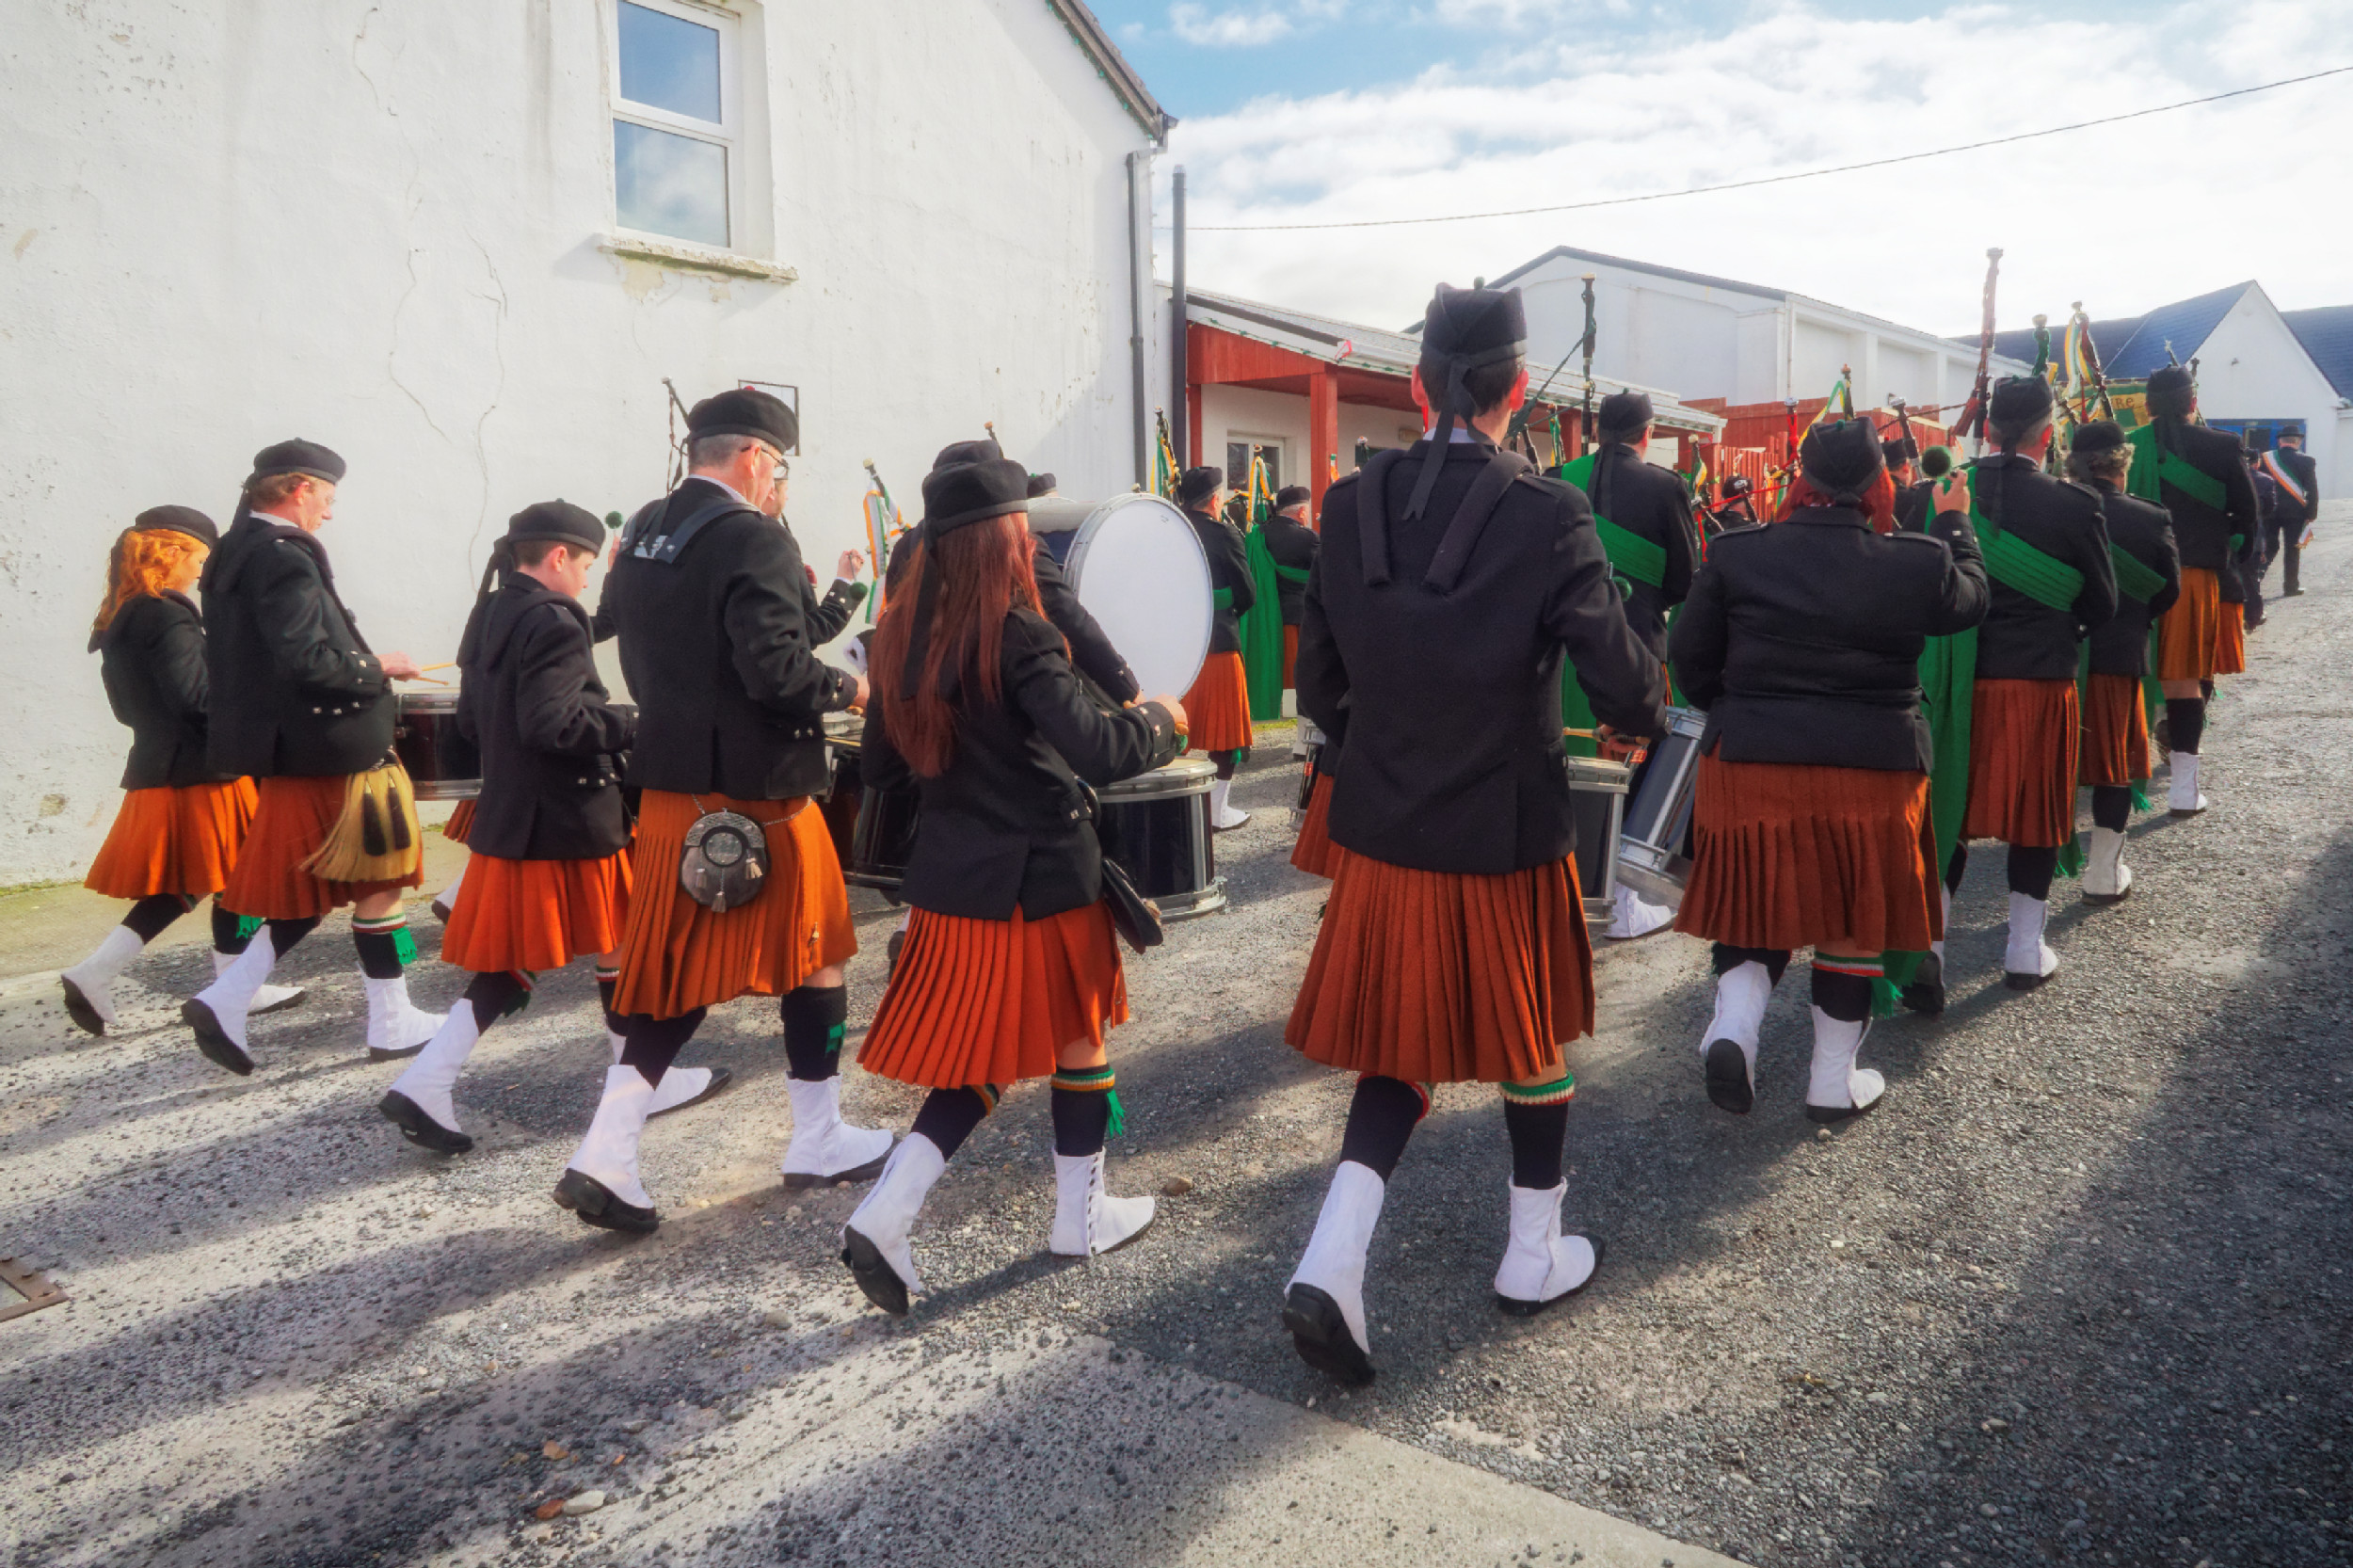 20160320131308-ie-achill-sound_parade-_DxO_13in_DxO96